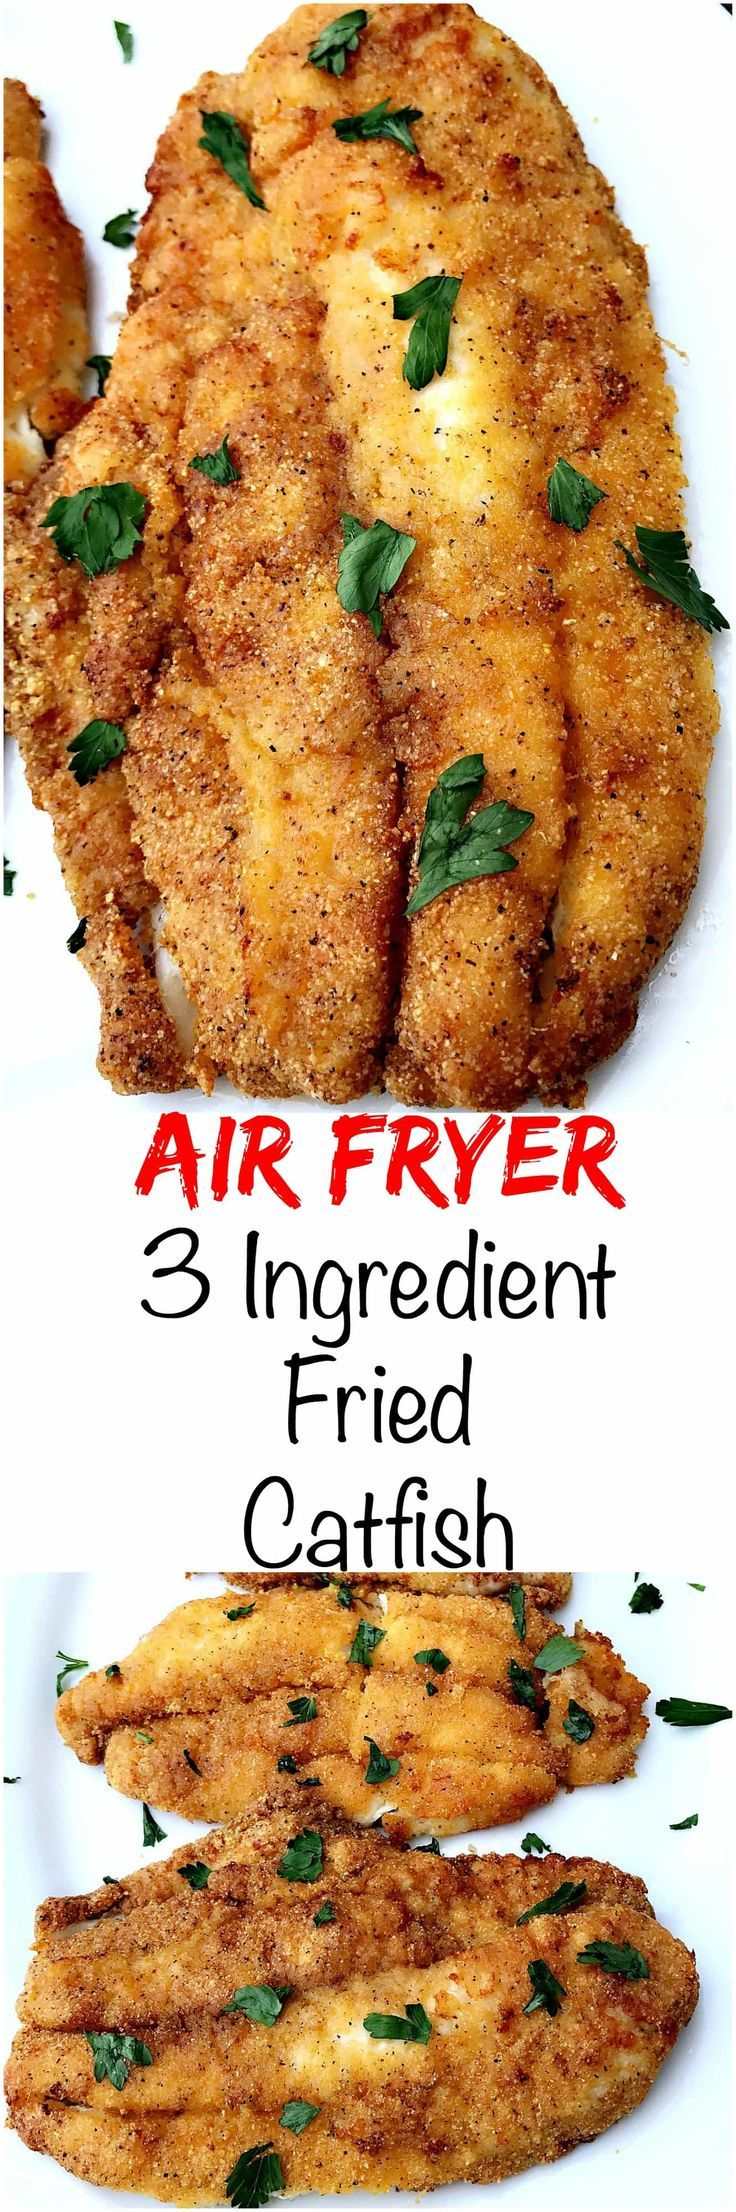 110 best low carb air fryer recipes images on pinterest for Airfryer recipes fish